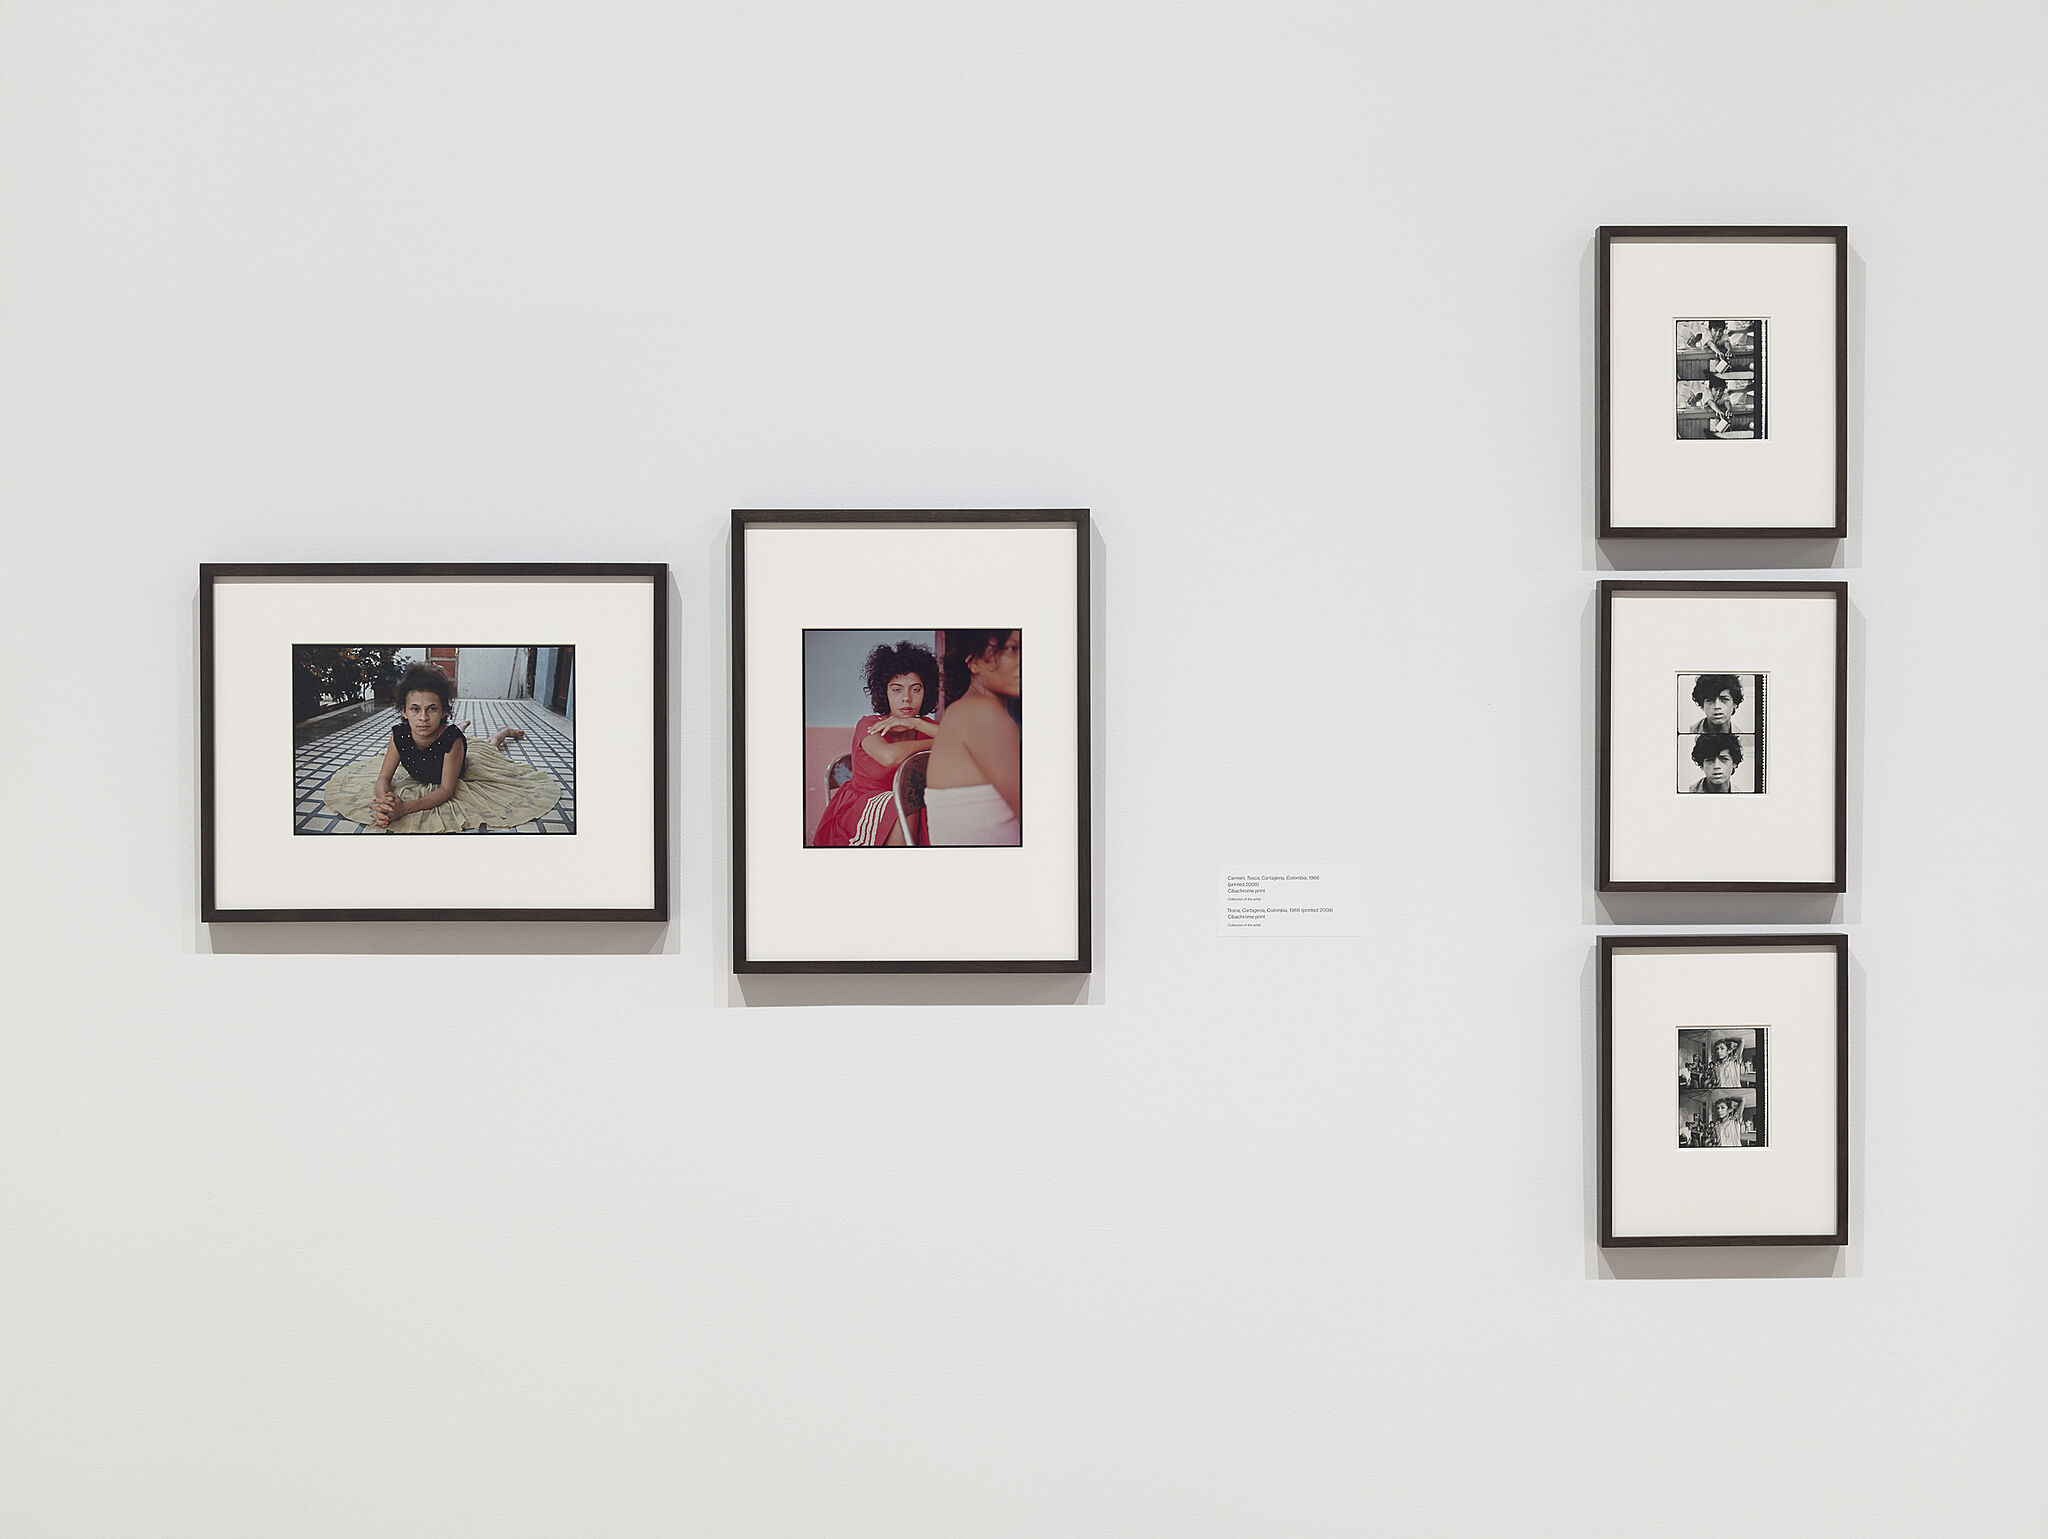 Five photos by Danny Lyon on the wall of a gallery.